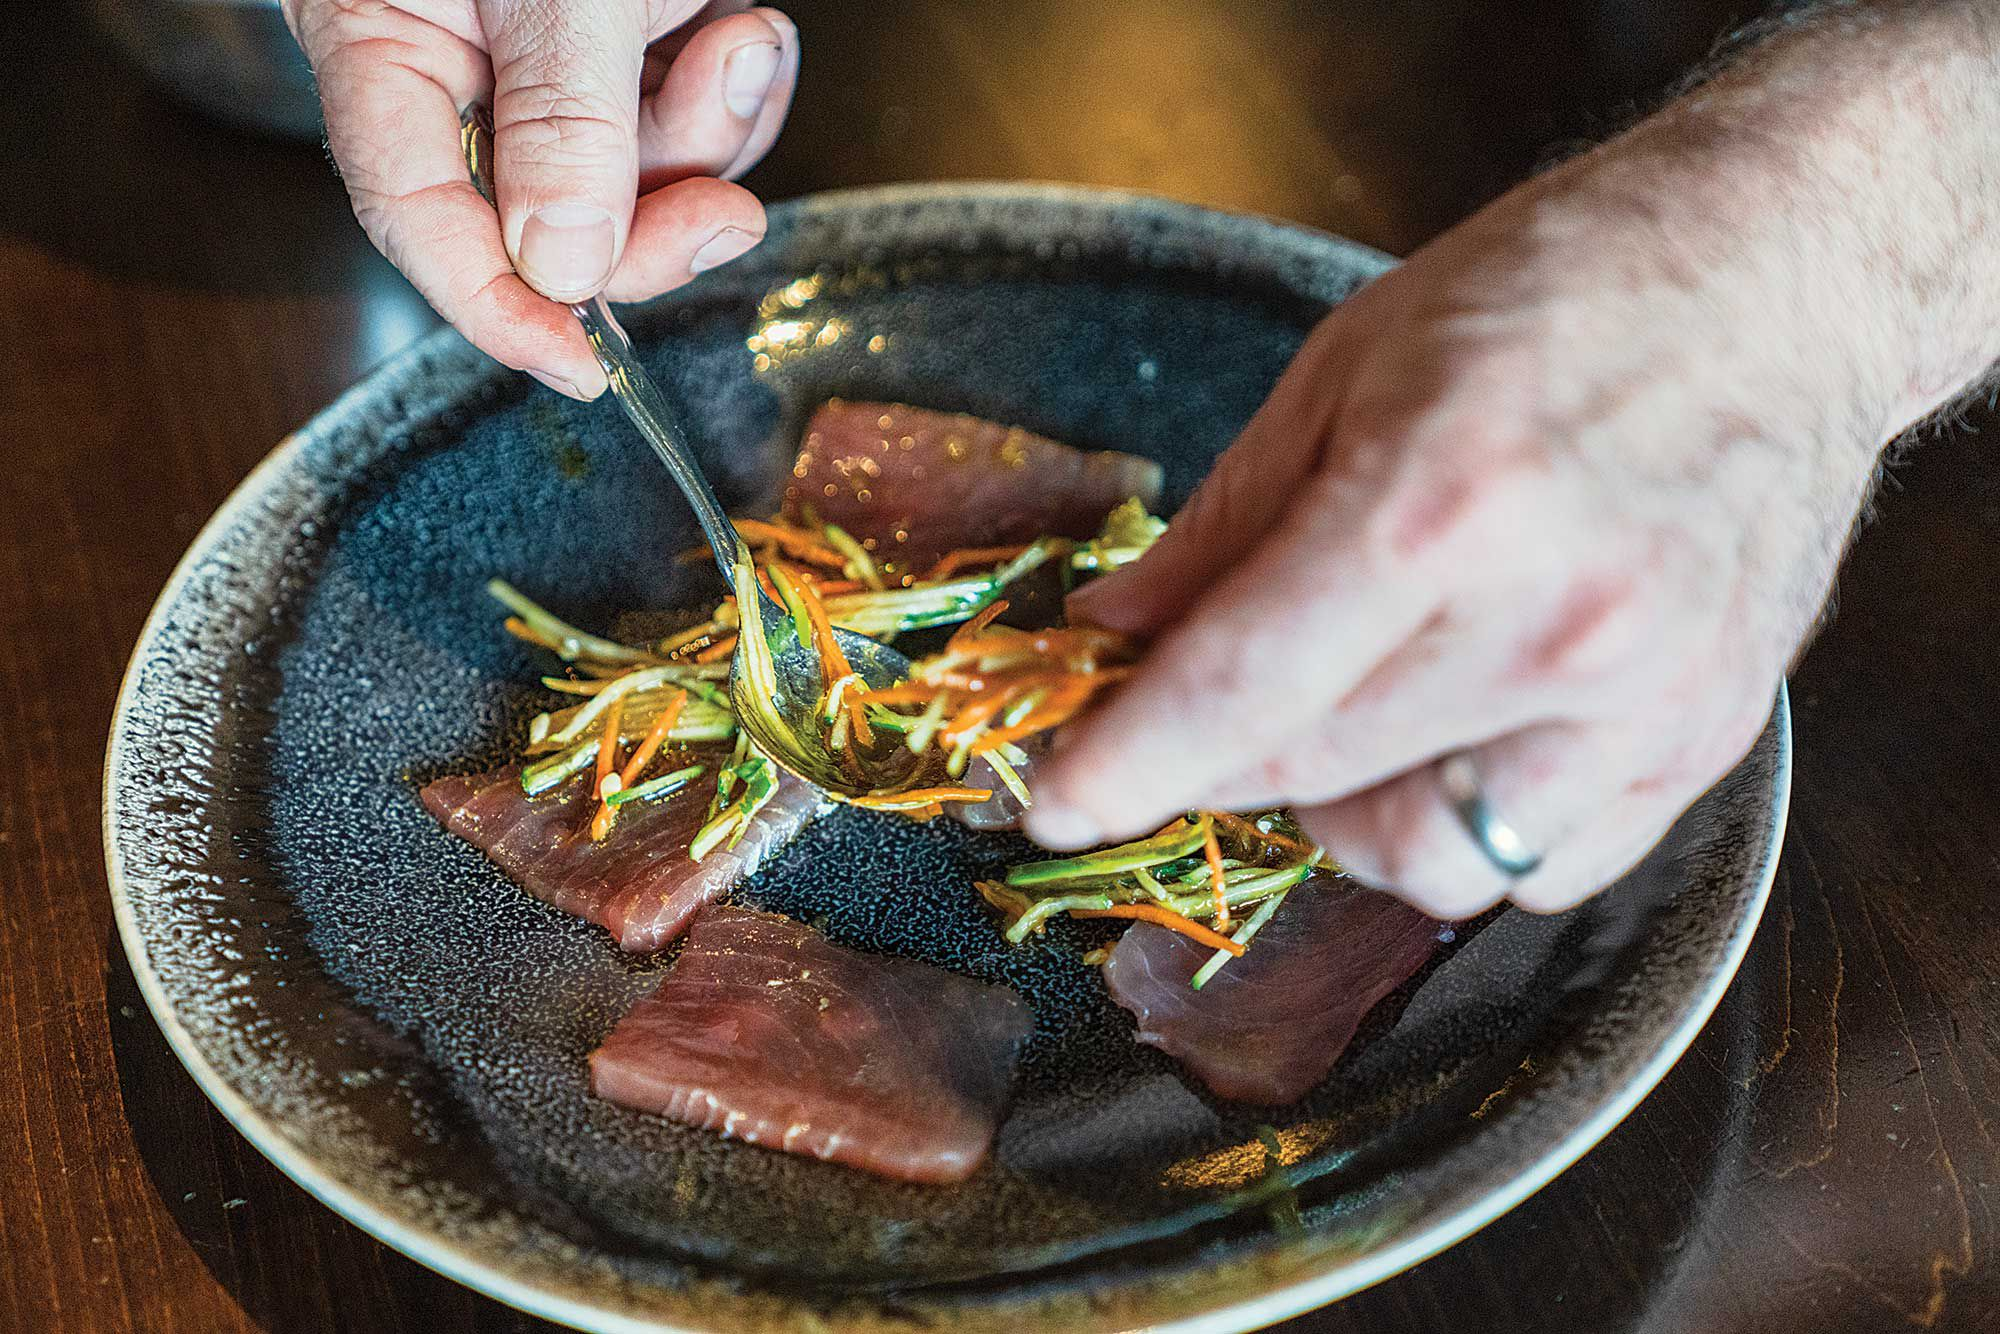 Plating and ­presentation is as easy as ­arranging the crudo and ­garnishing with the green papaya slaw.